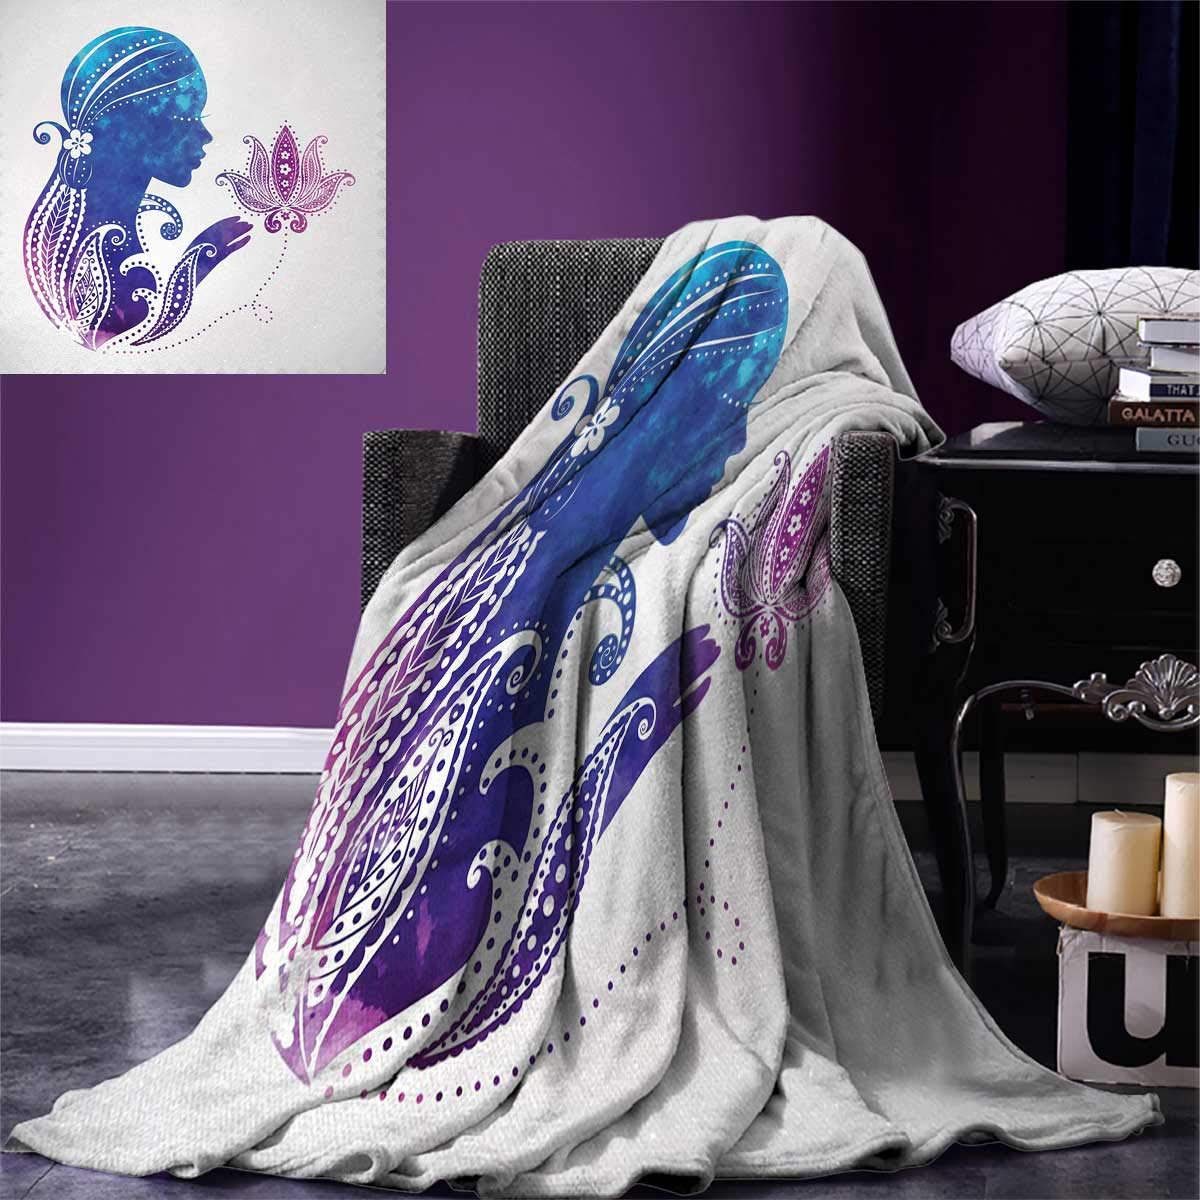 Teen Girls Super Soft Lightweight Blanket Girls Silhouette with Flowers on Her Hair Floral Ornaments Meditation Spa Art Oversized Travel Throw Cover Blanket 90''x70'' Purple Blue